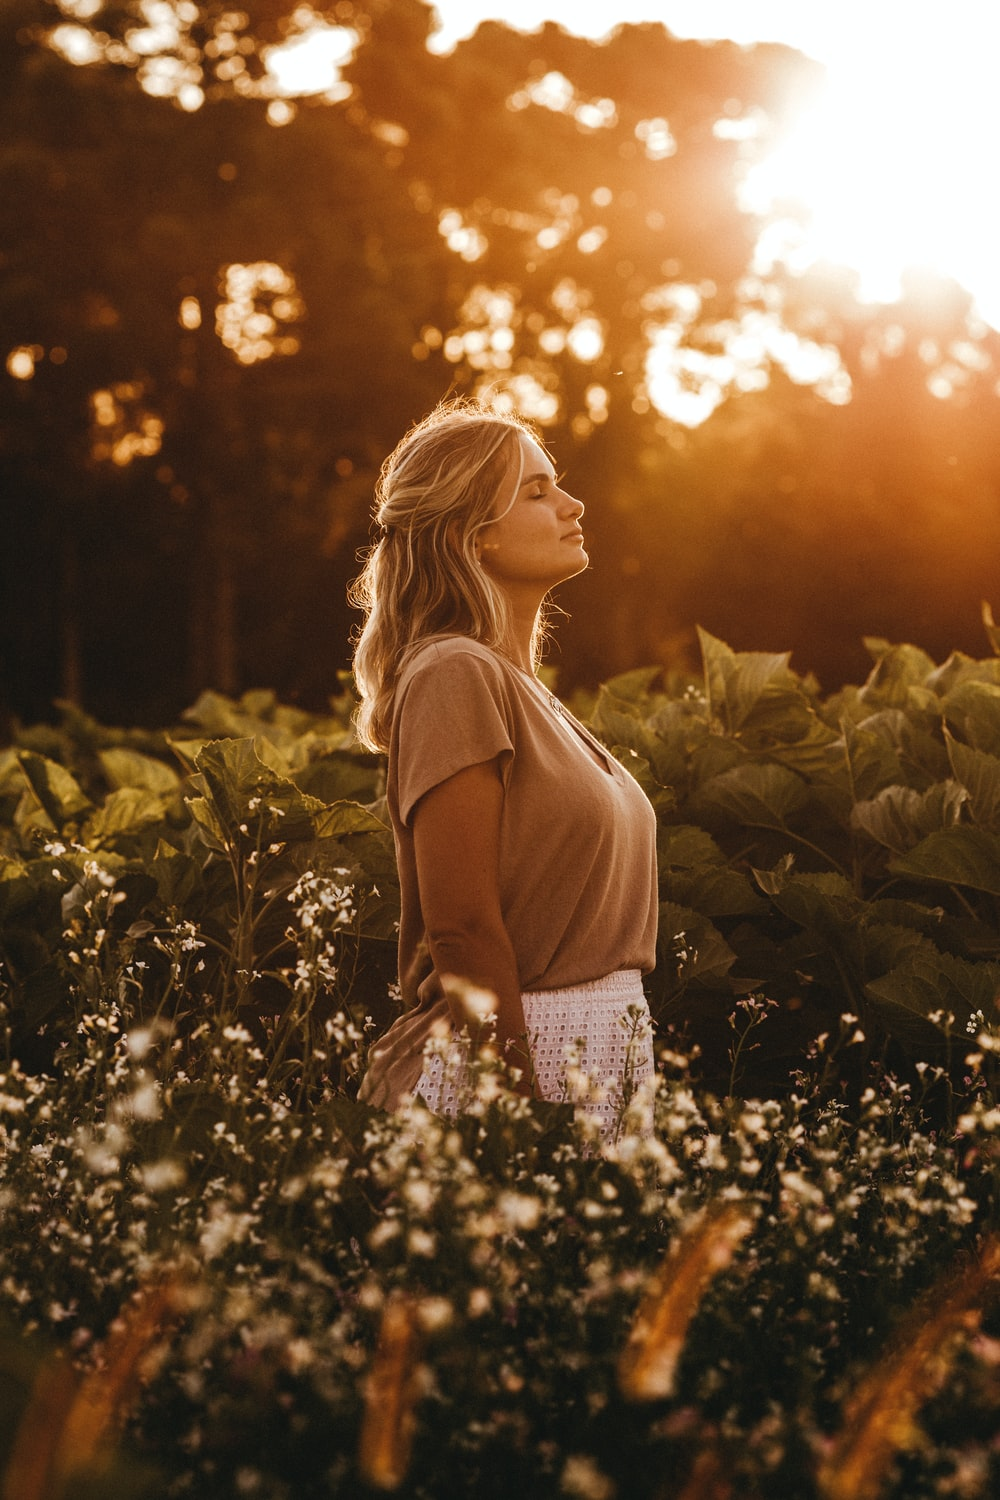 woman in brown tank top standing on green grass field during sunset